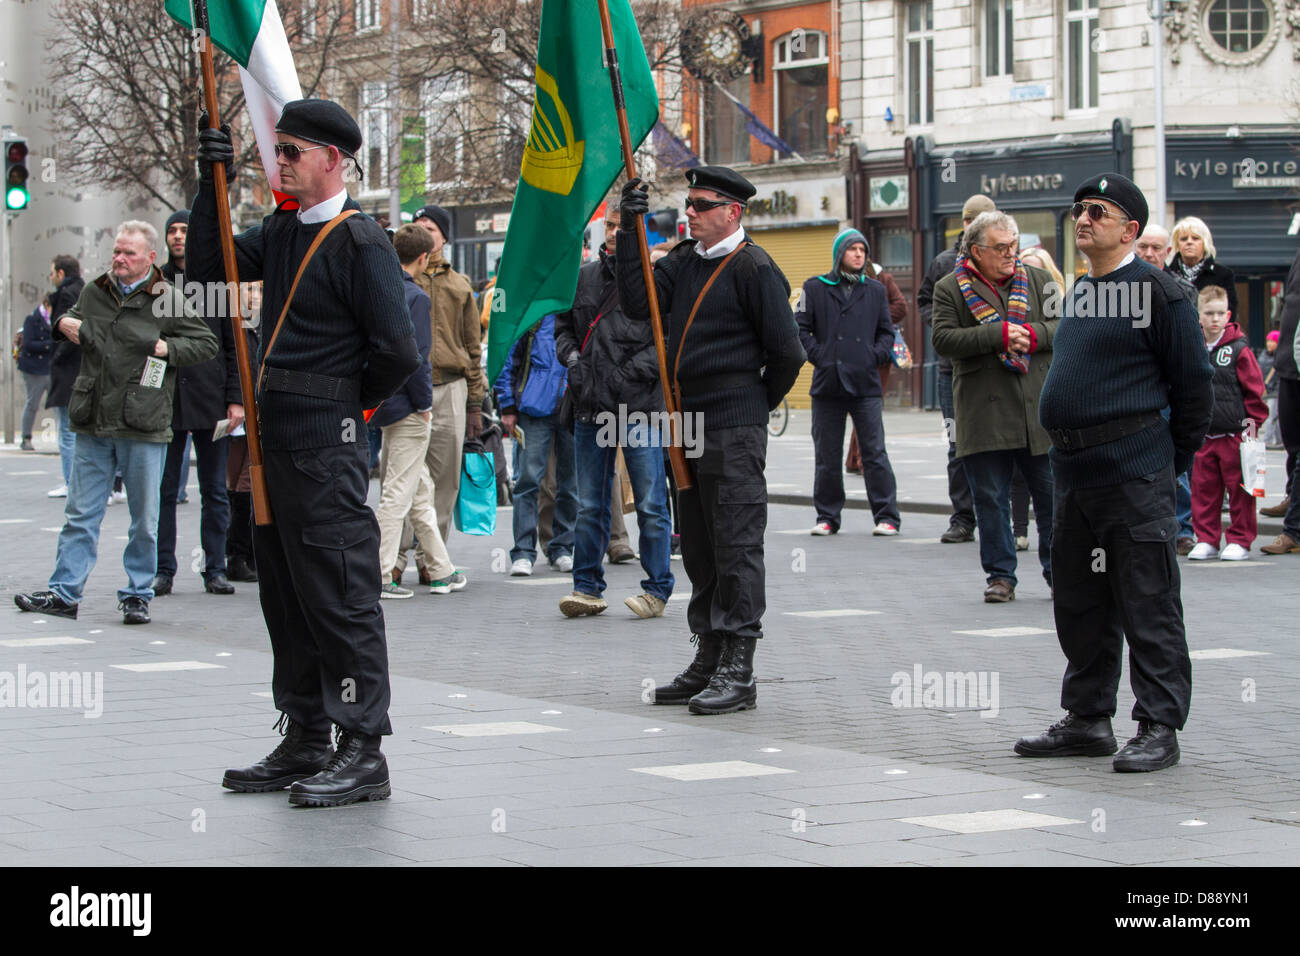 Dissident group Republican Sinn Fein march to the GPO in Dublin to commemorate the Easter Rising of 1916 Stock Photo